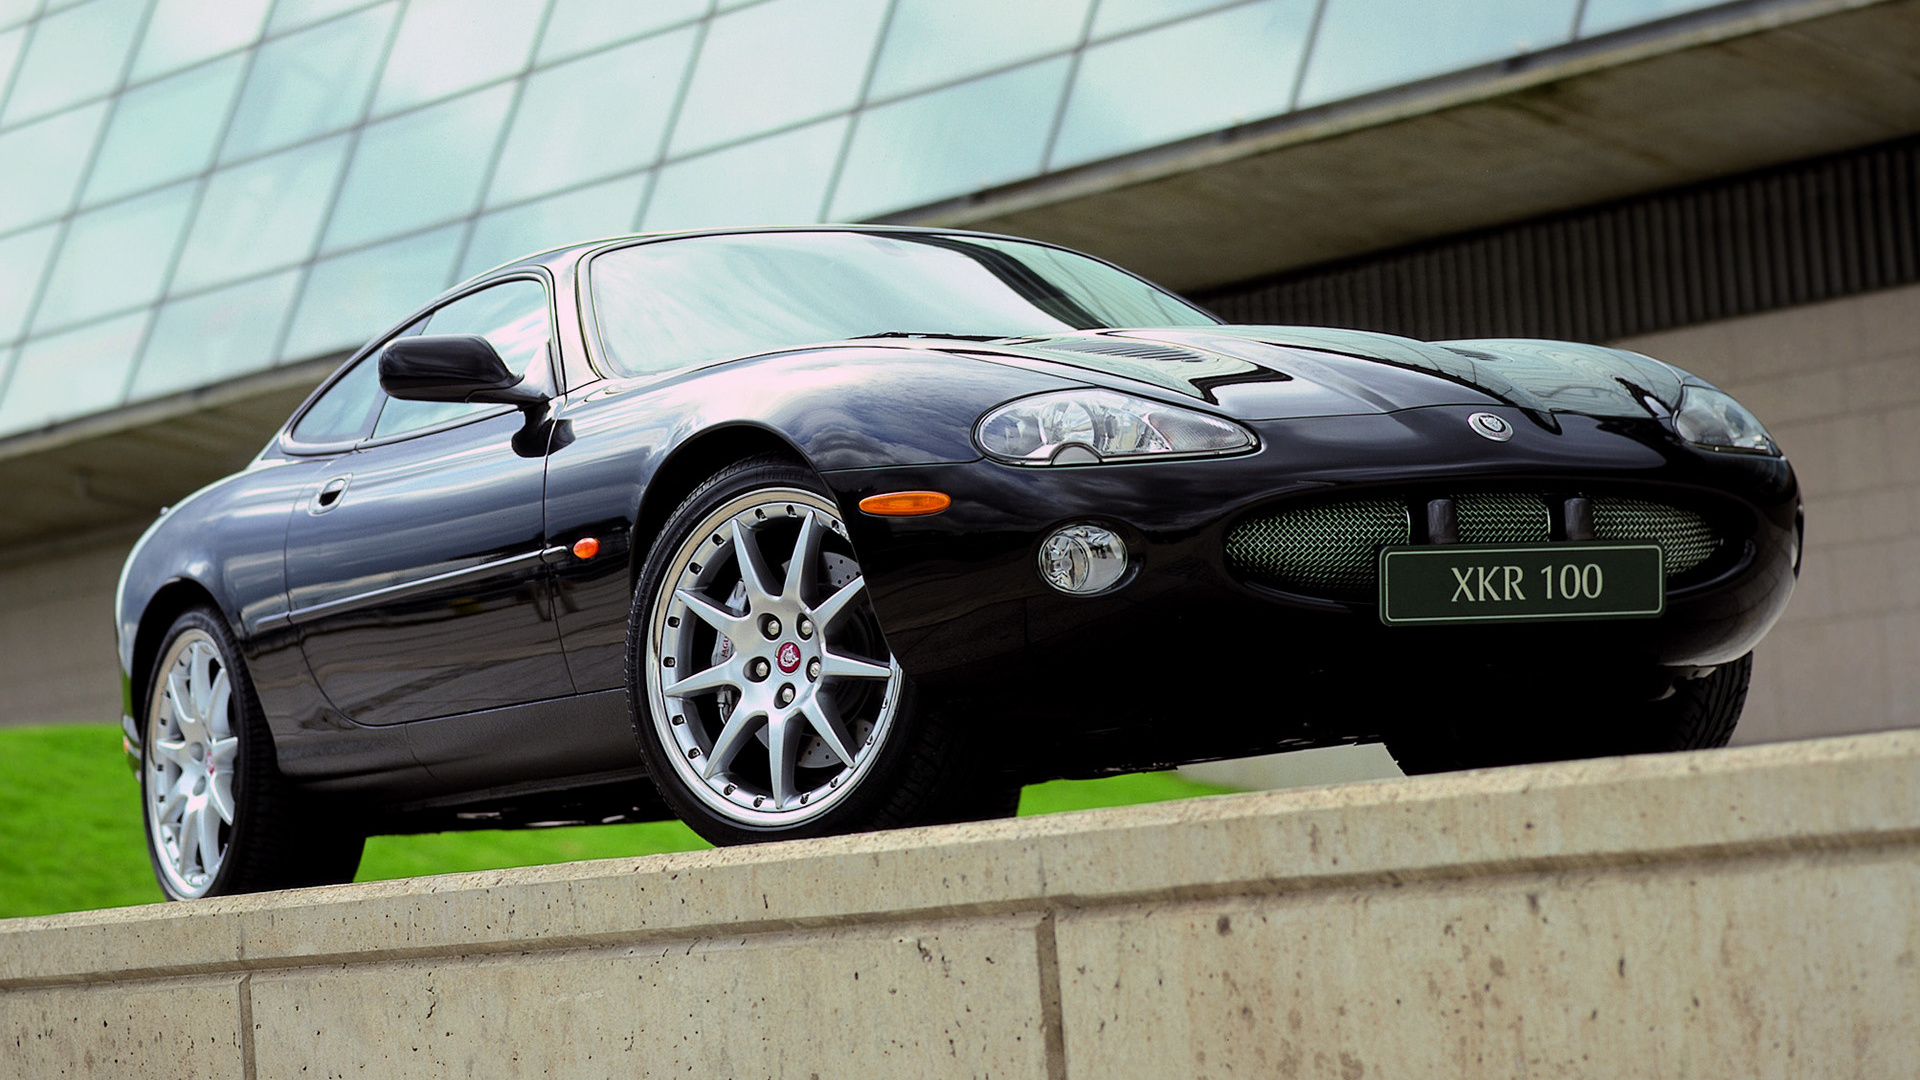 2002 Jaguar XKR 100 Coupe - Wallpapers and HD Images | Car Pixel